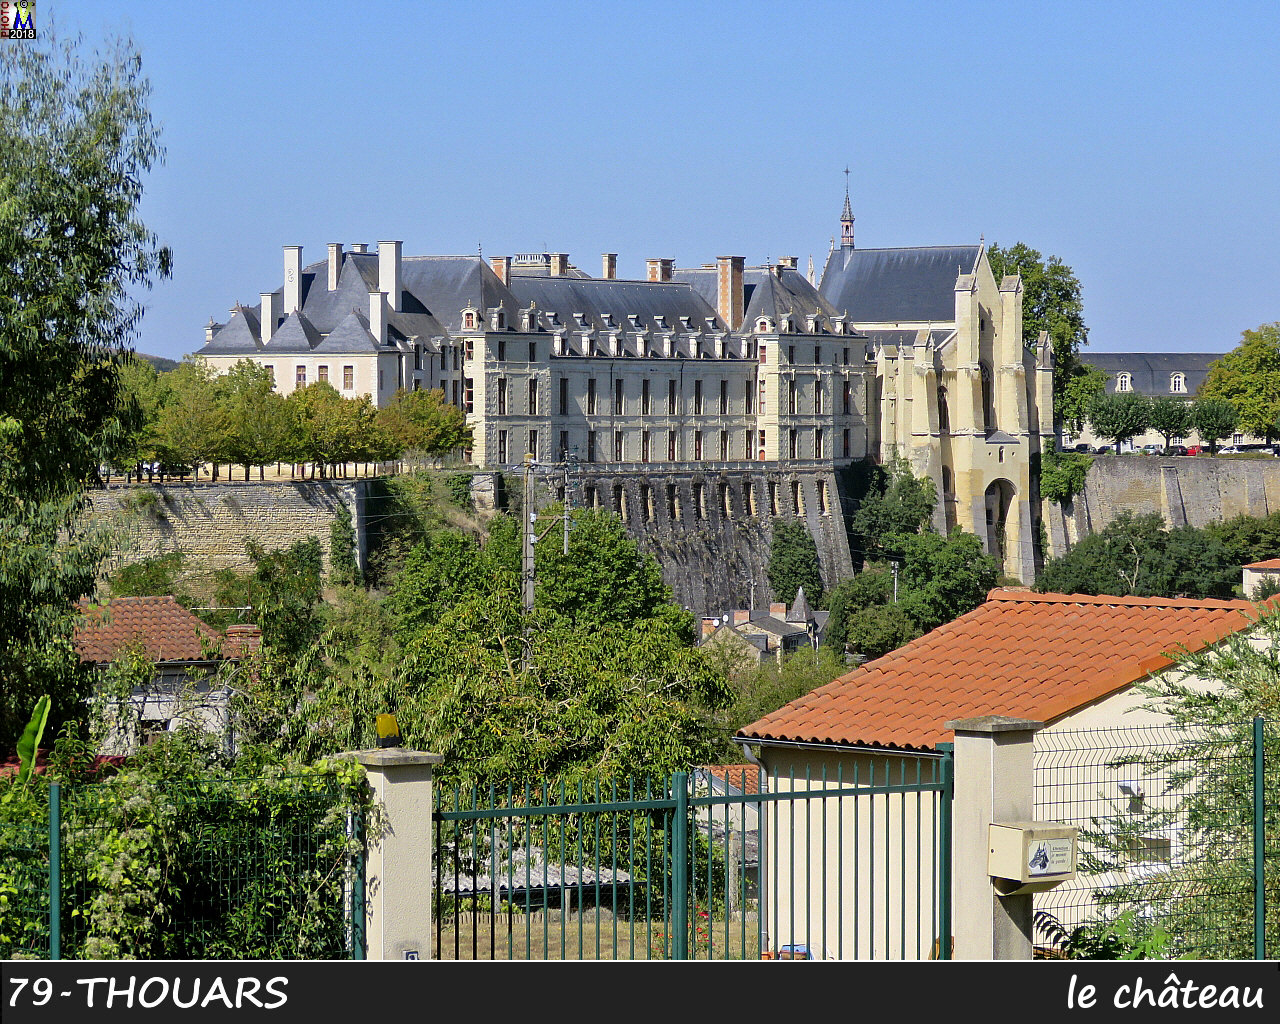 79THOUARS_chateau_1000.jpg